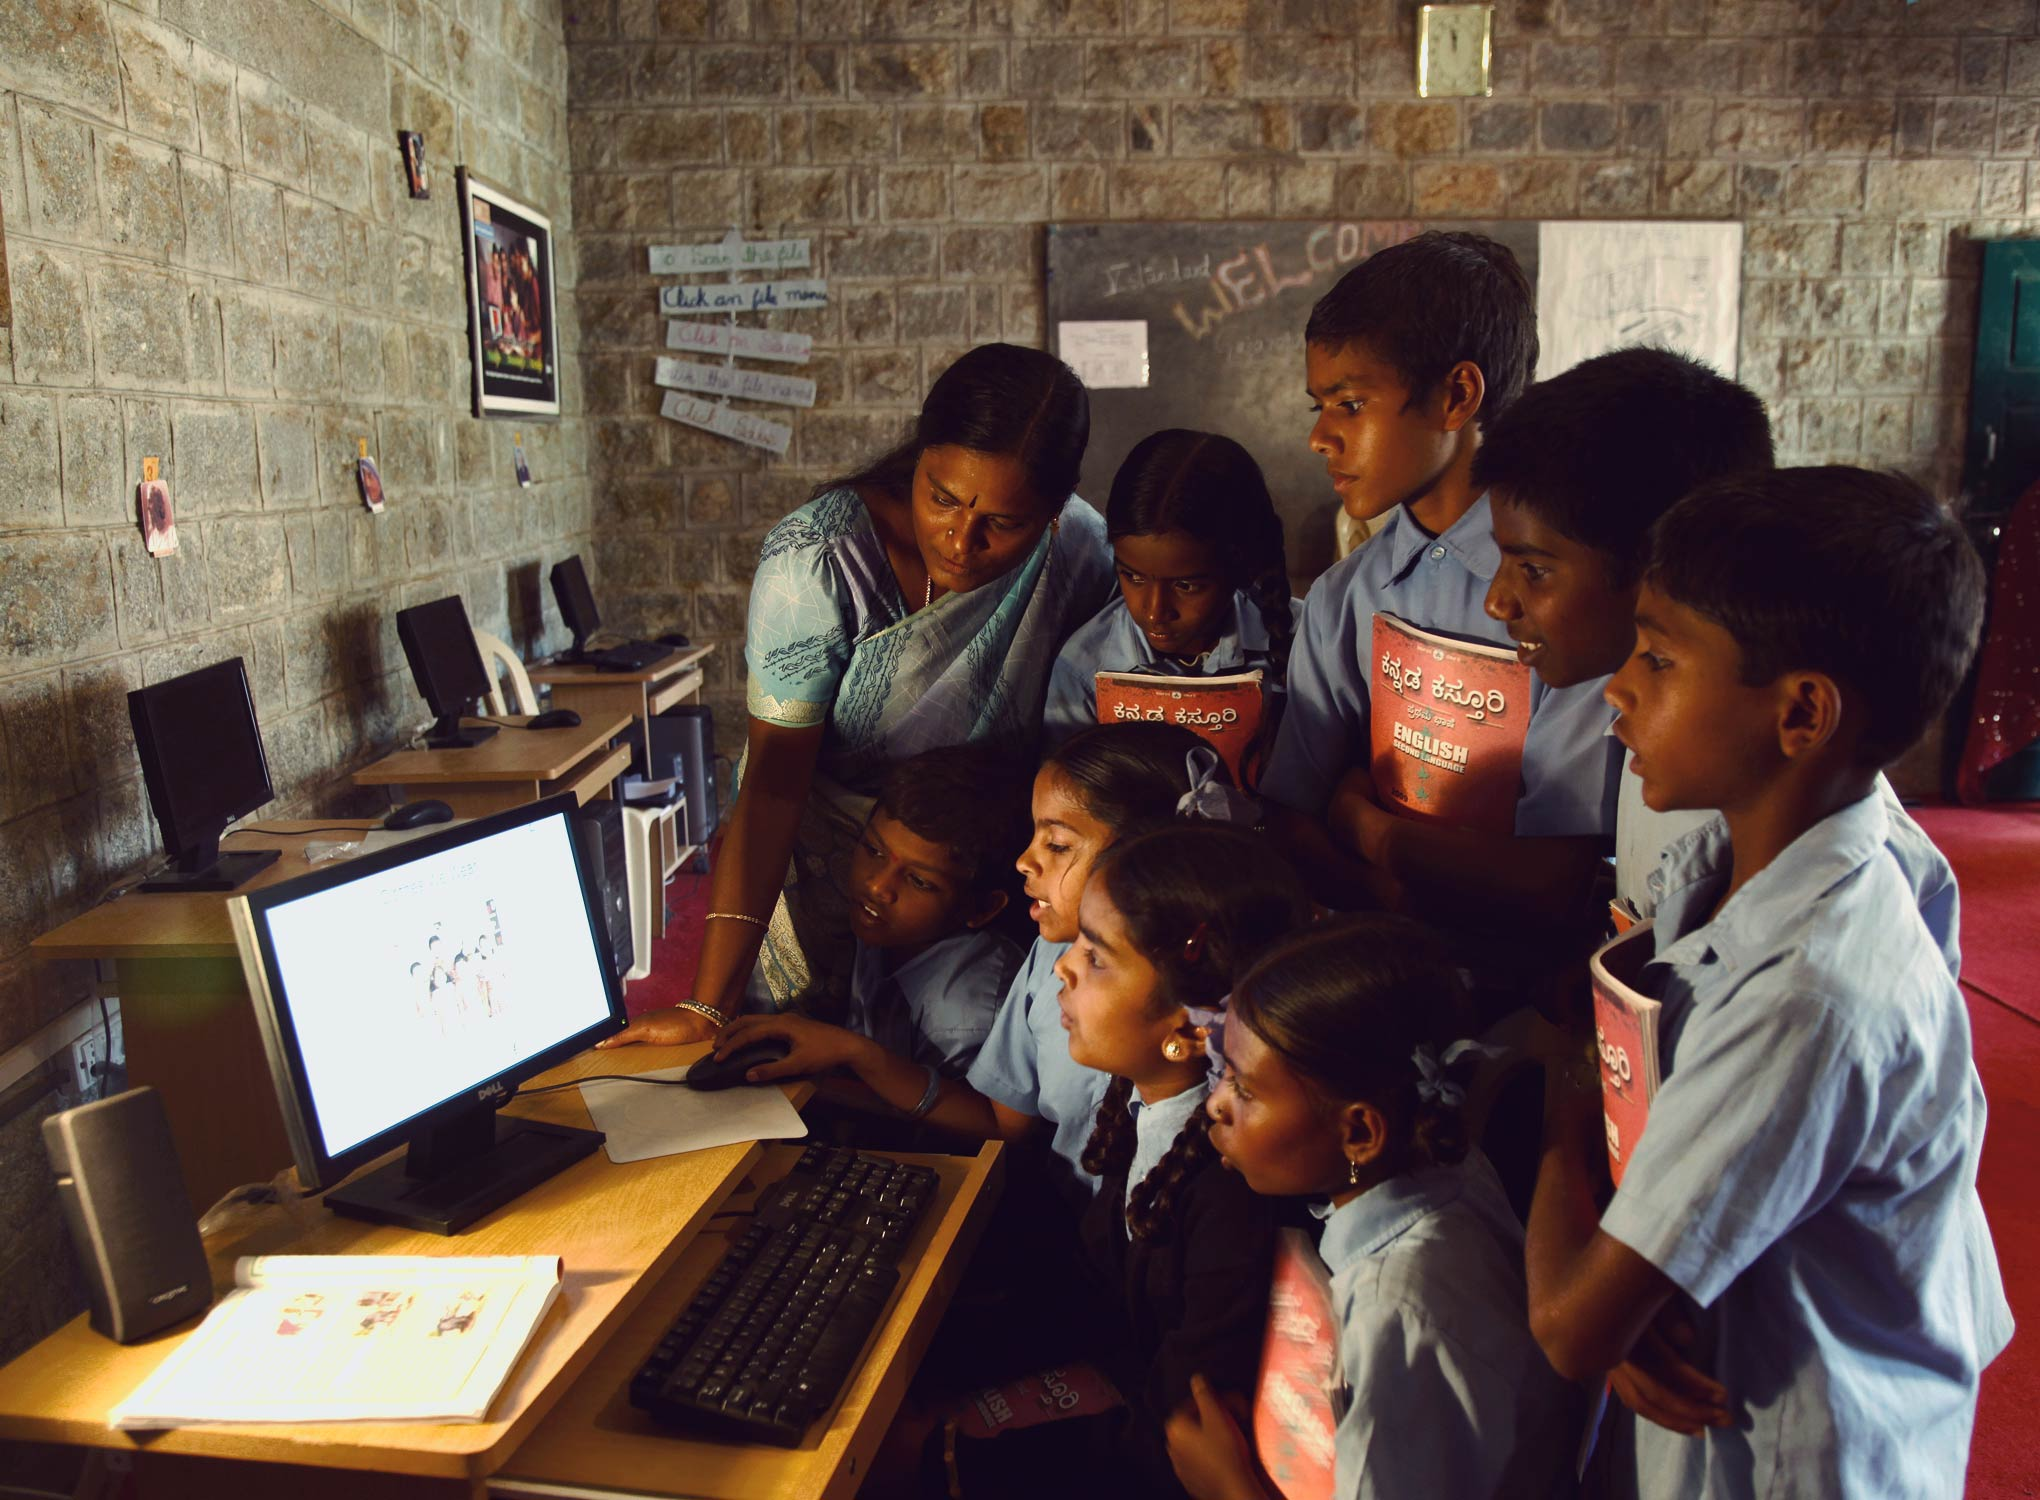 E-Education & Access To Information In Lockdown: Digital Divide